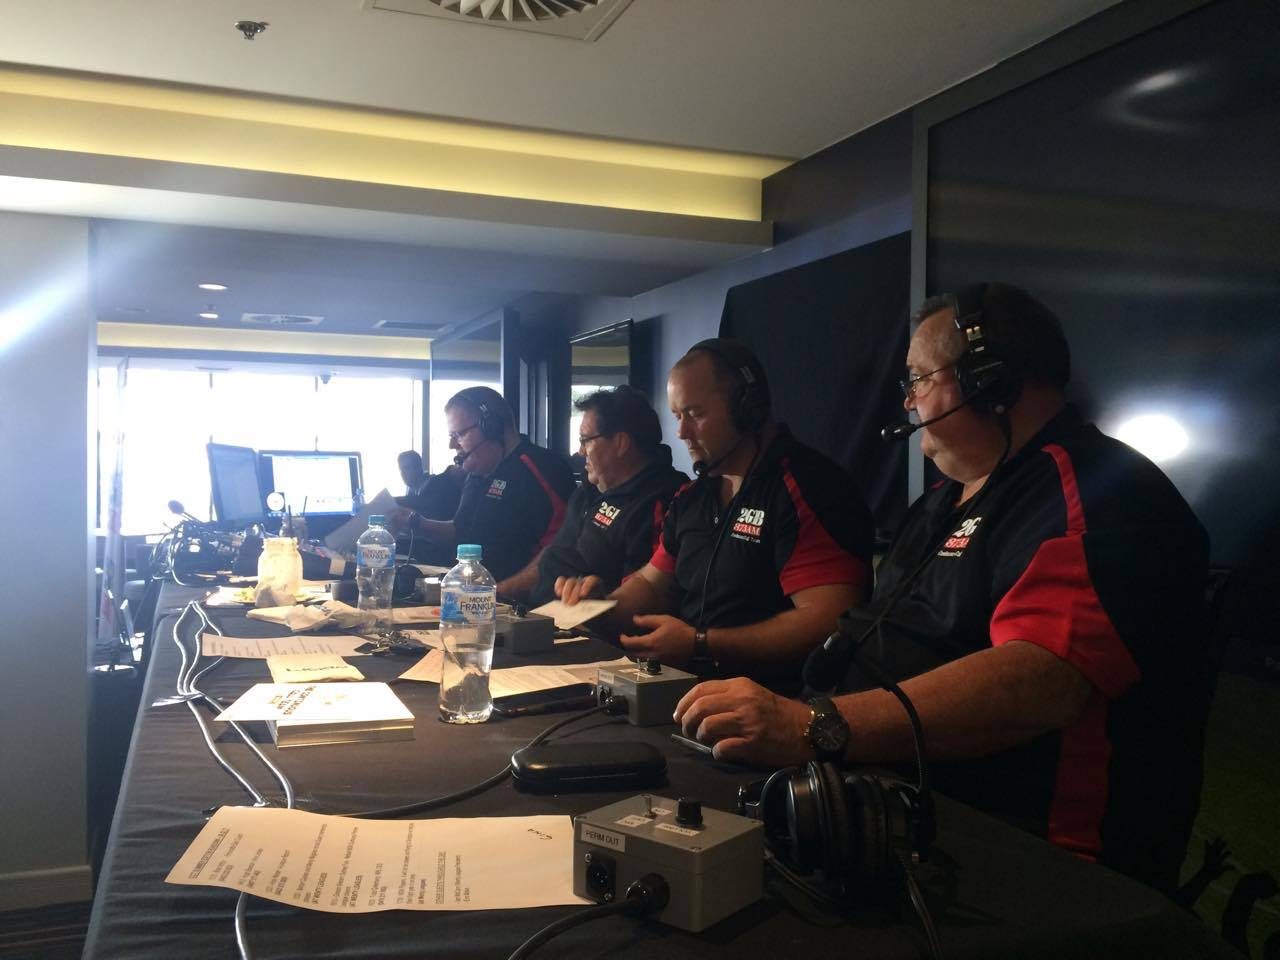 The CCT Summer Edition Live from Wenty Leagues